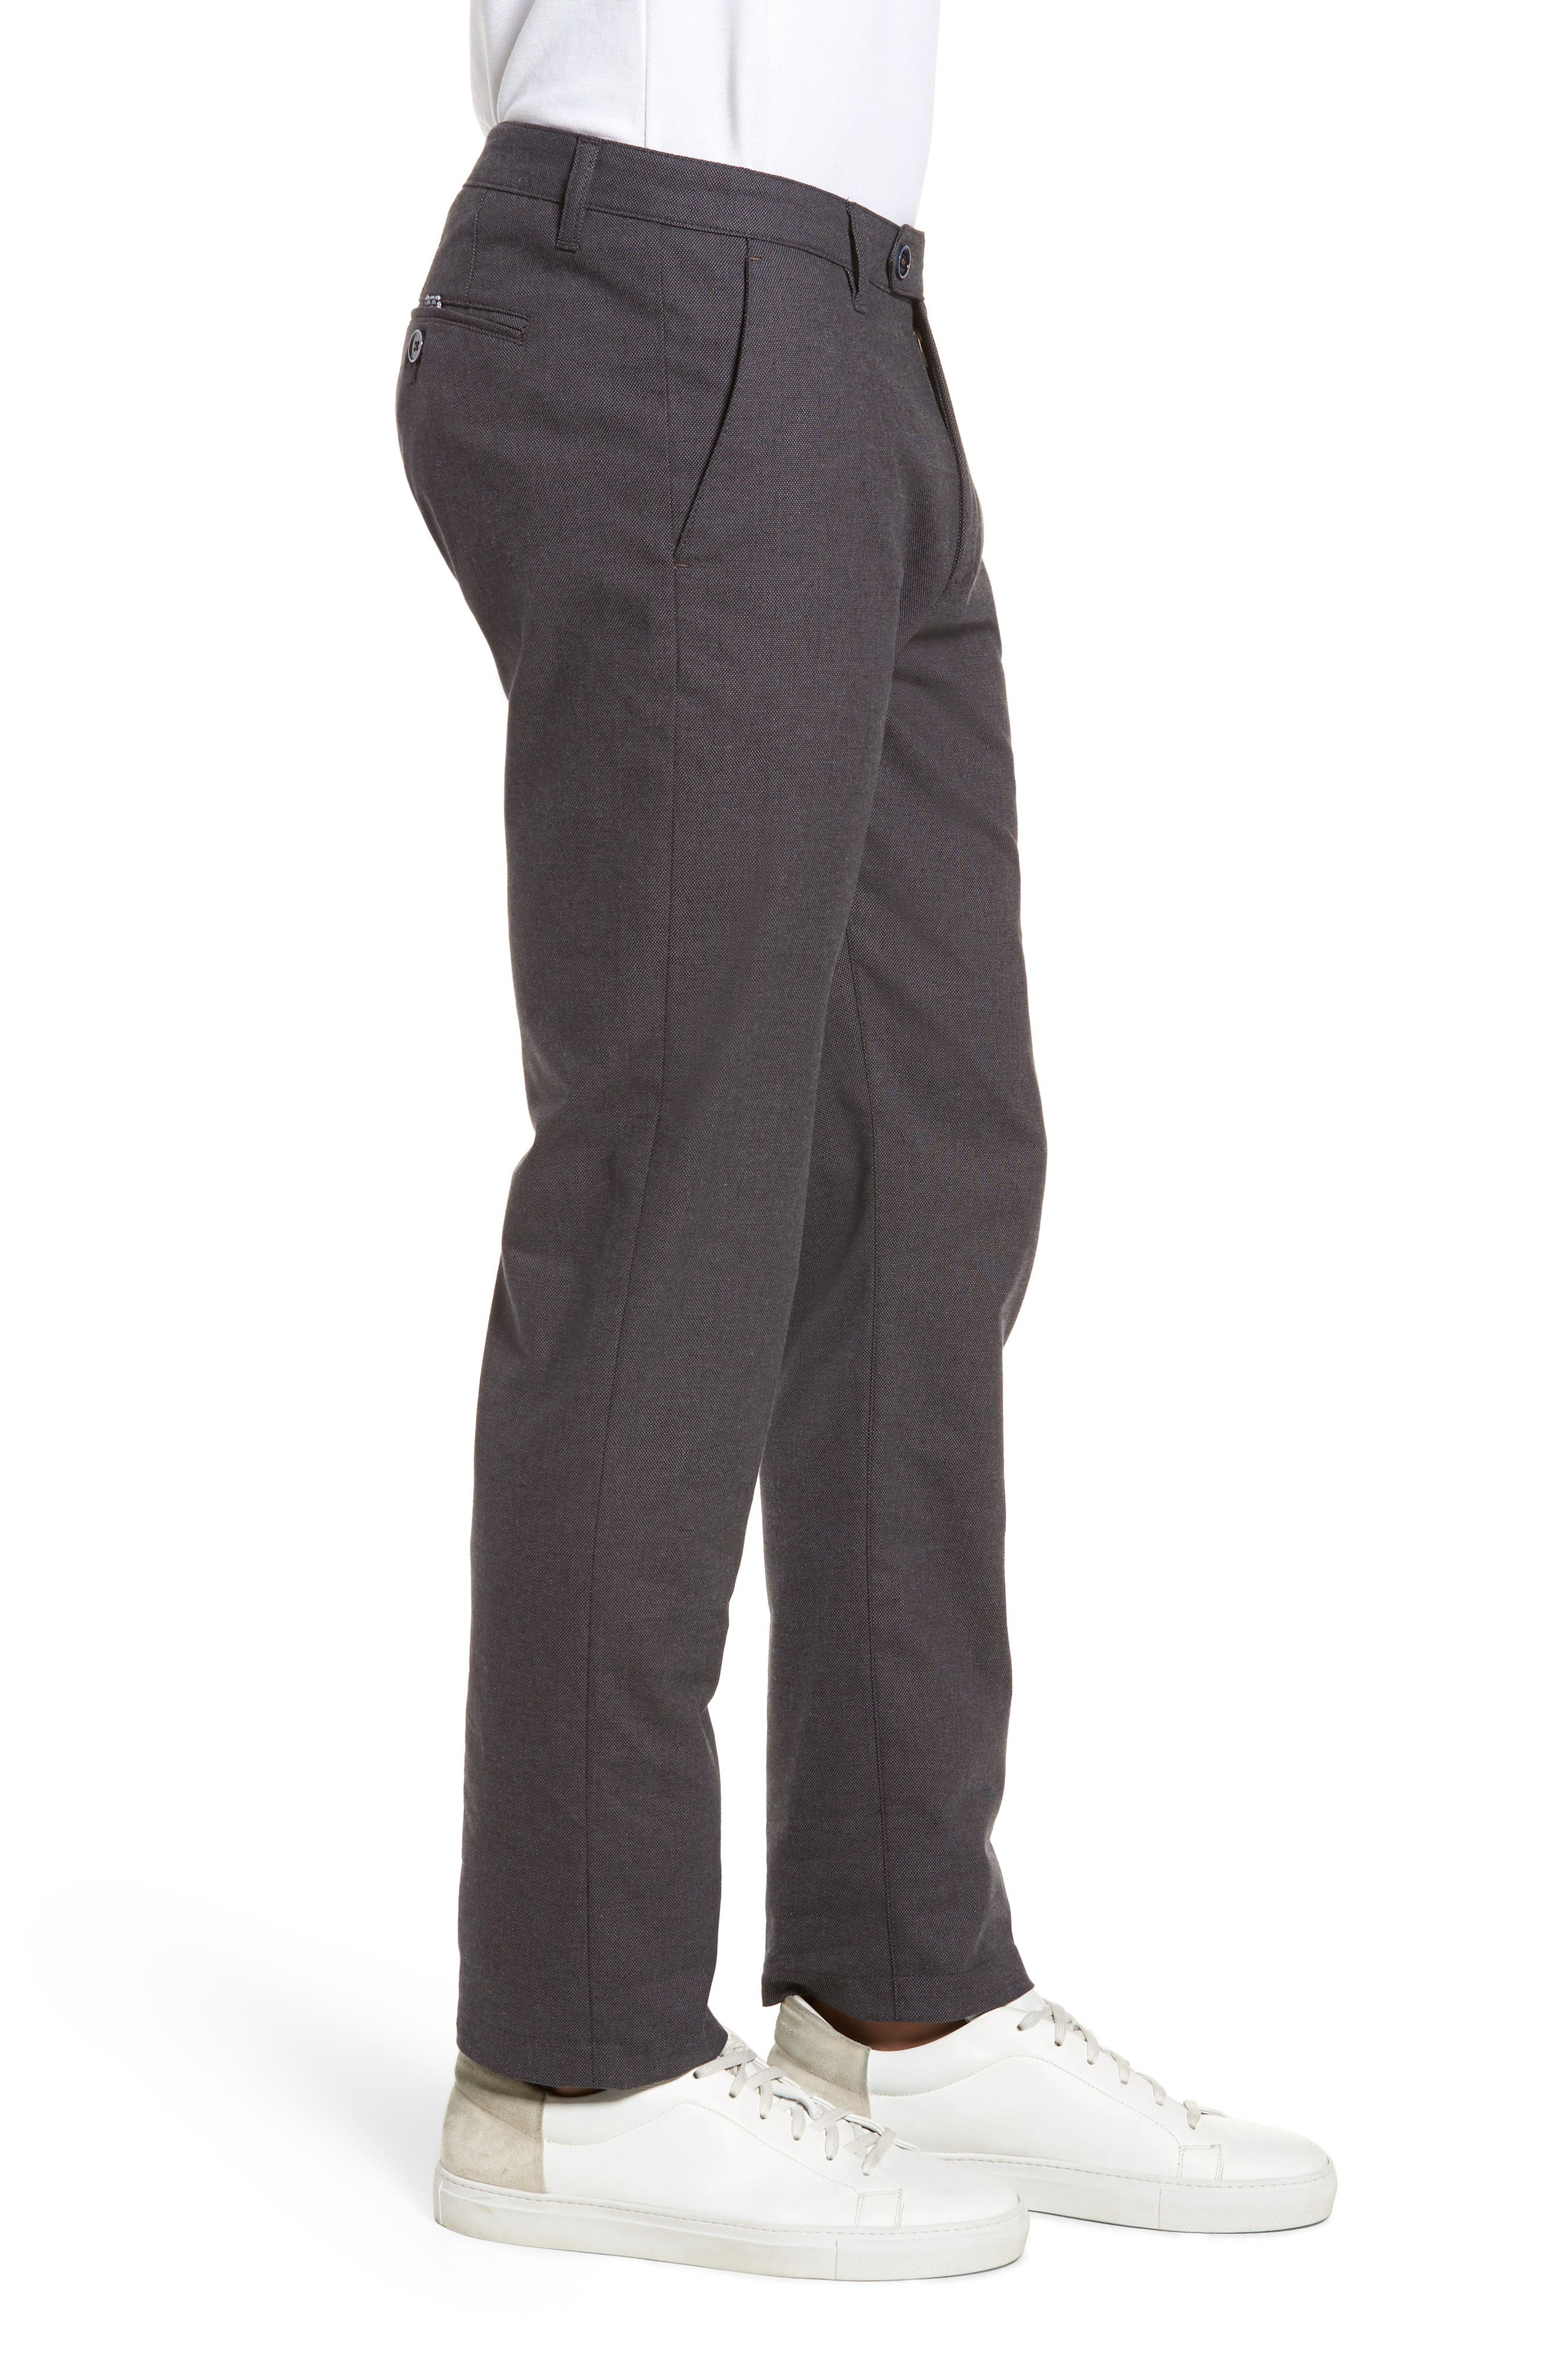 Holldet Flat Front Stretch Solid Cotton Pants,                             Alternate thumbnail 3, color,                             Charcoal